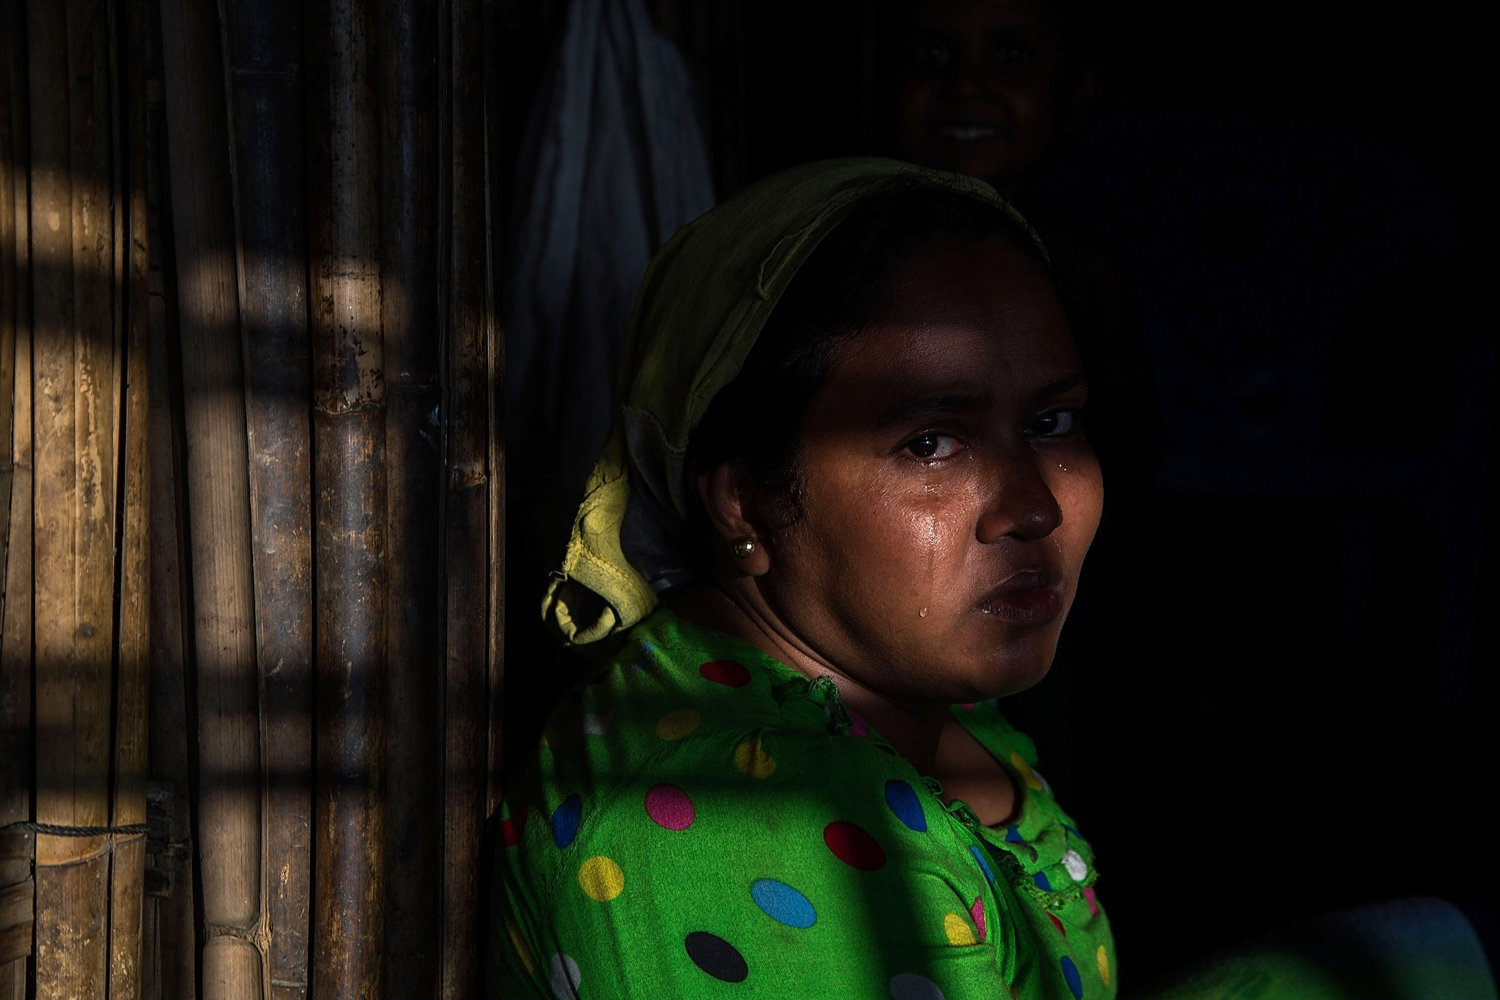 May 9, 2014.  Noorba Goung cries inside a tent after her first baby died at Dar Paing refugees camp in Sittwe, Burma.